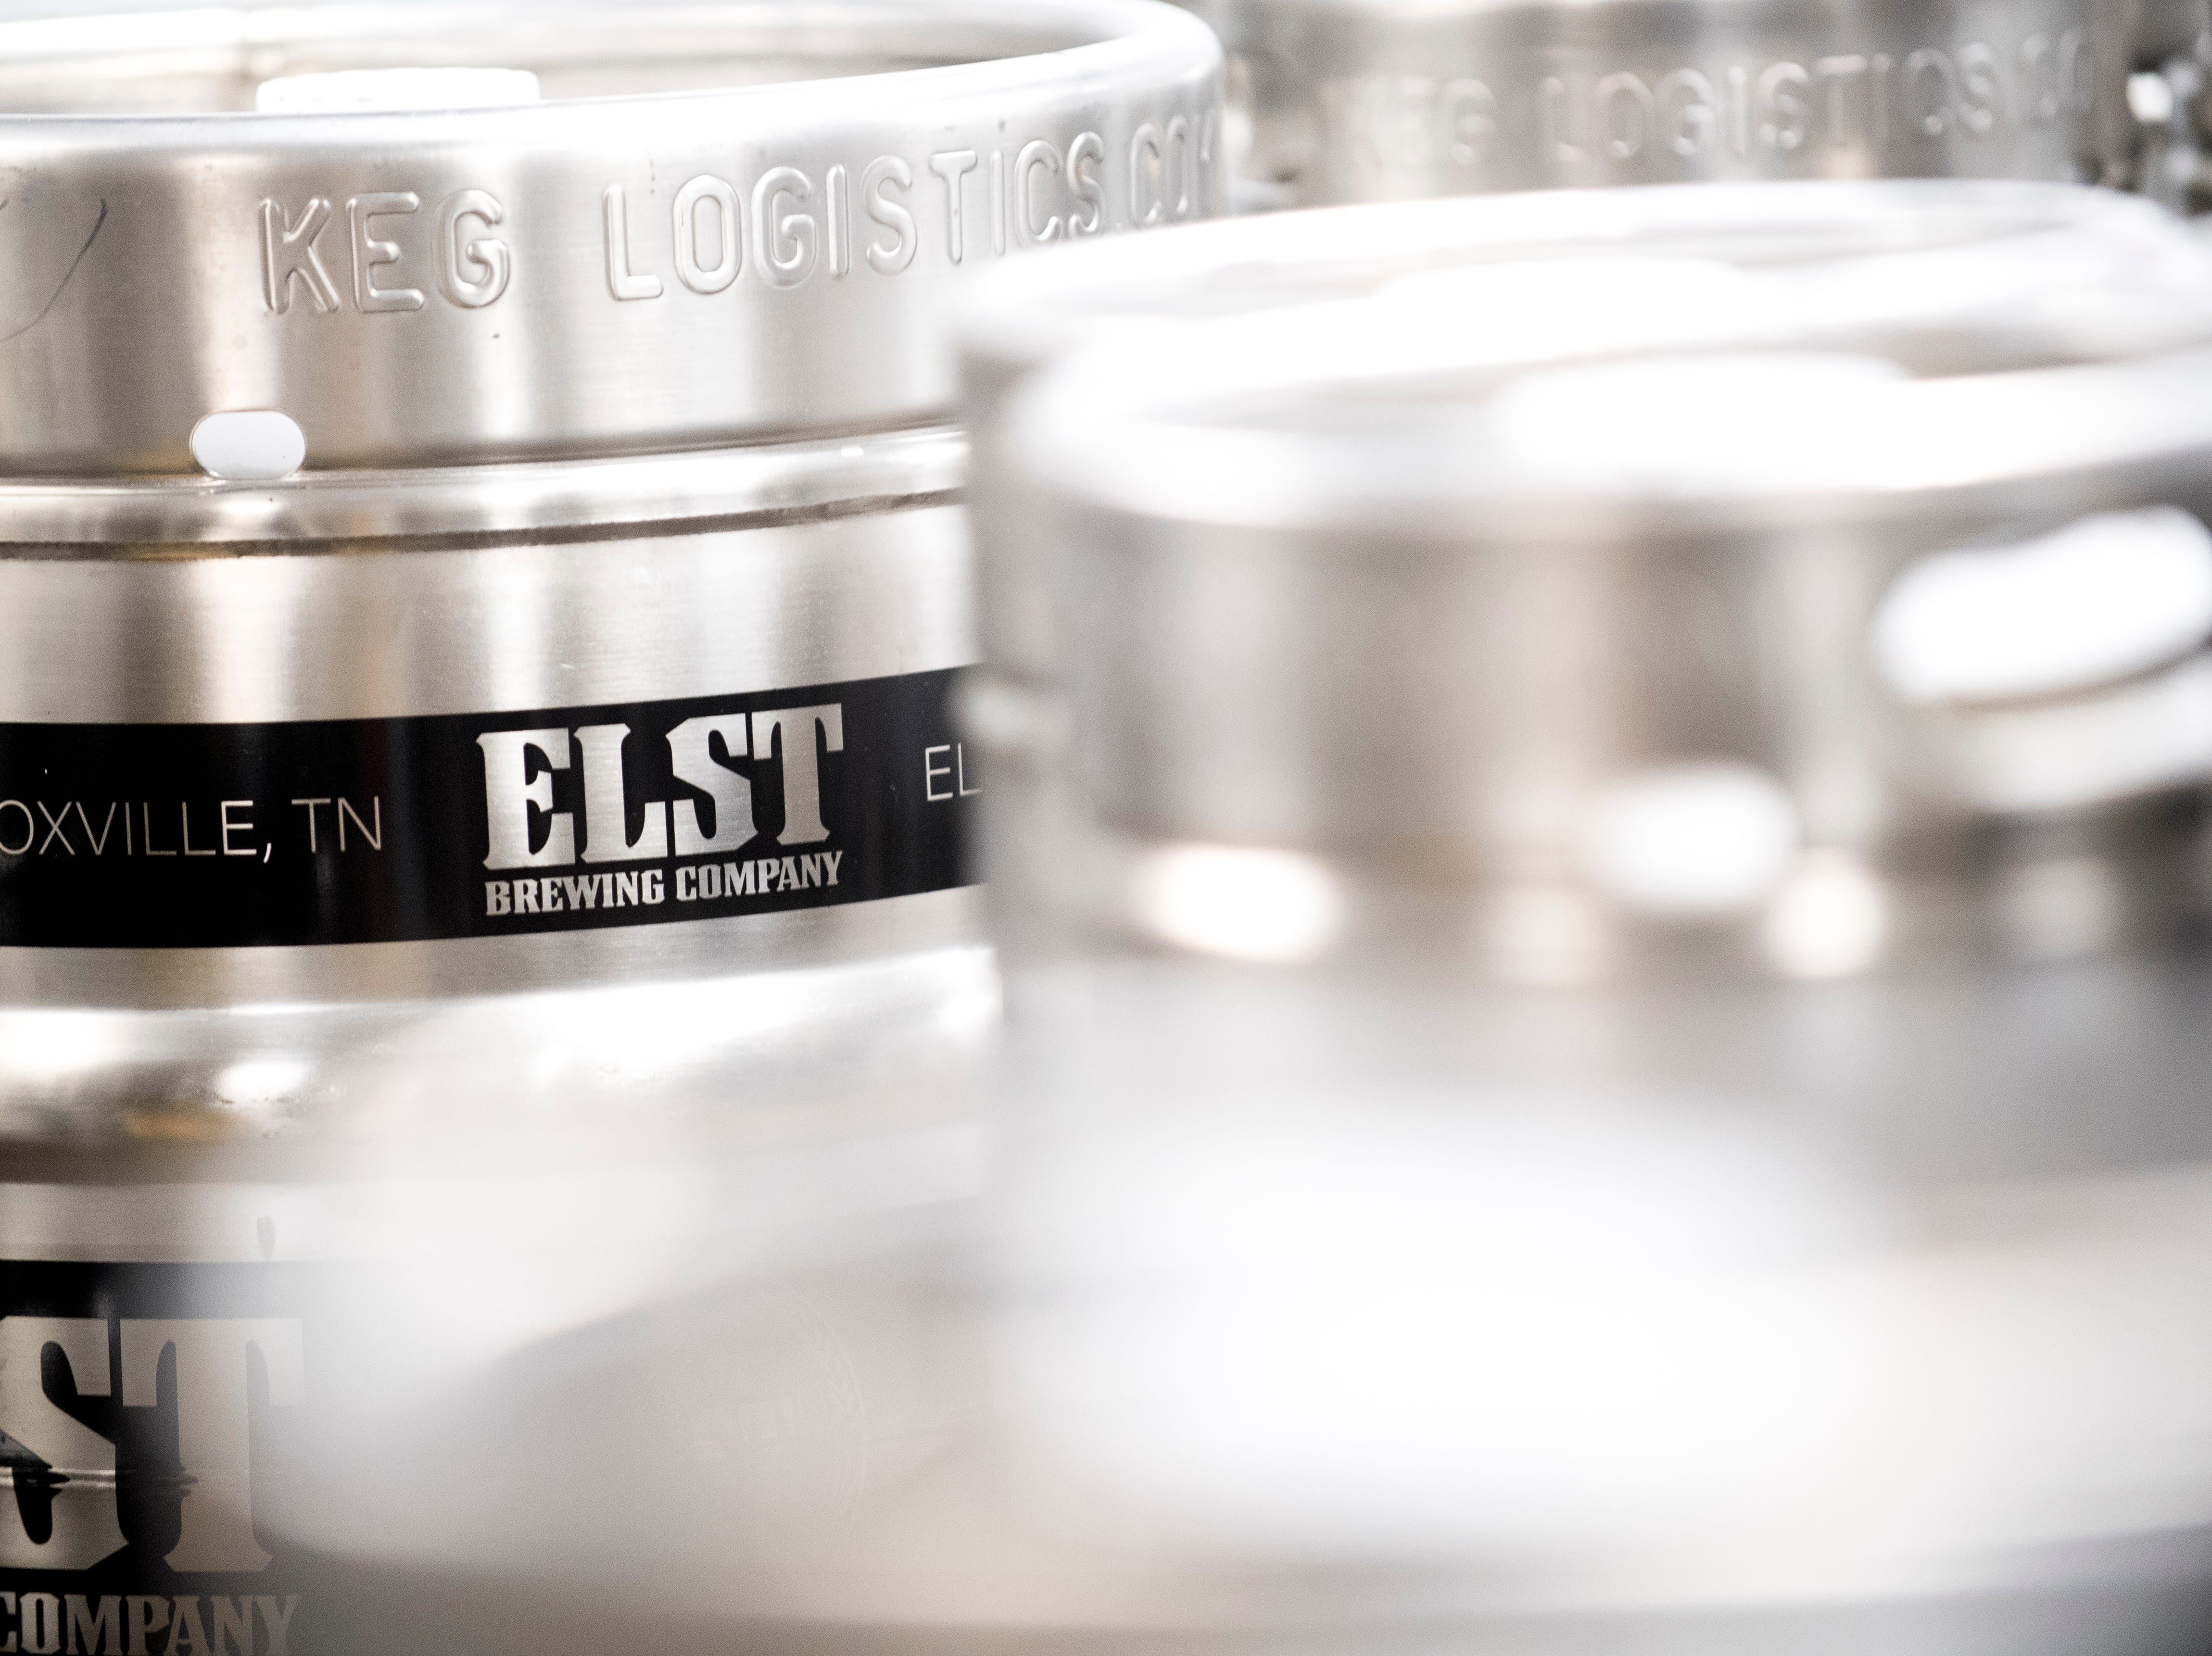 Kegs of Elst beer sit inside the cooler at Elst Brewing Company on 2417 N Central St. in Knoxville, Tennessee on Thursday, November 1, 2018. Elst plans to open its door beginning next year.